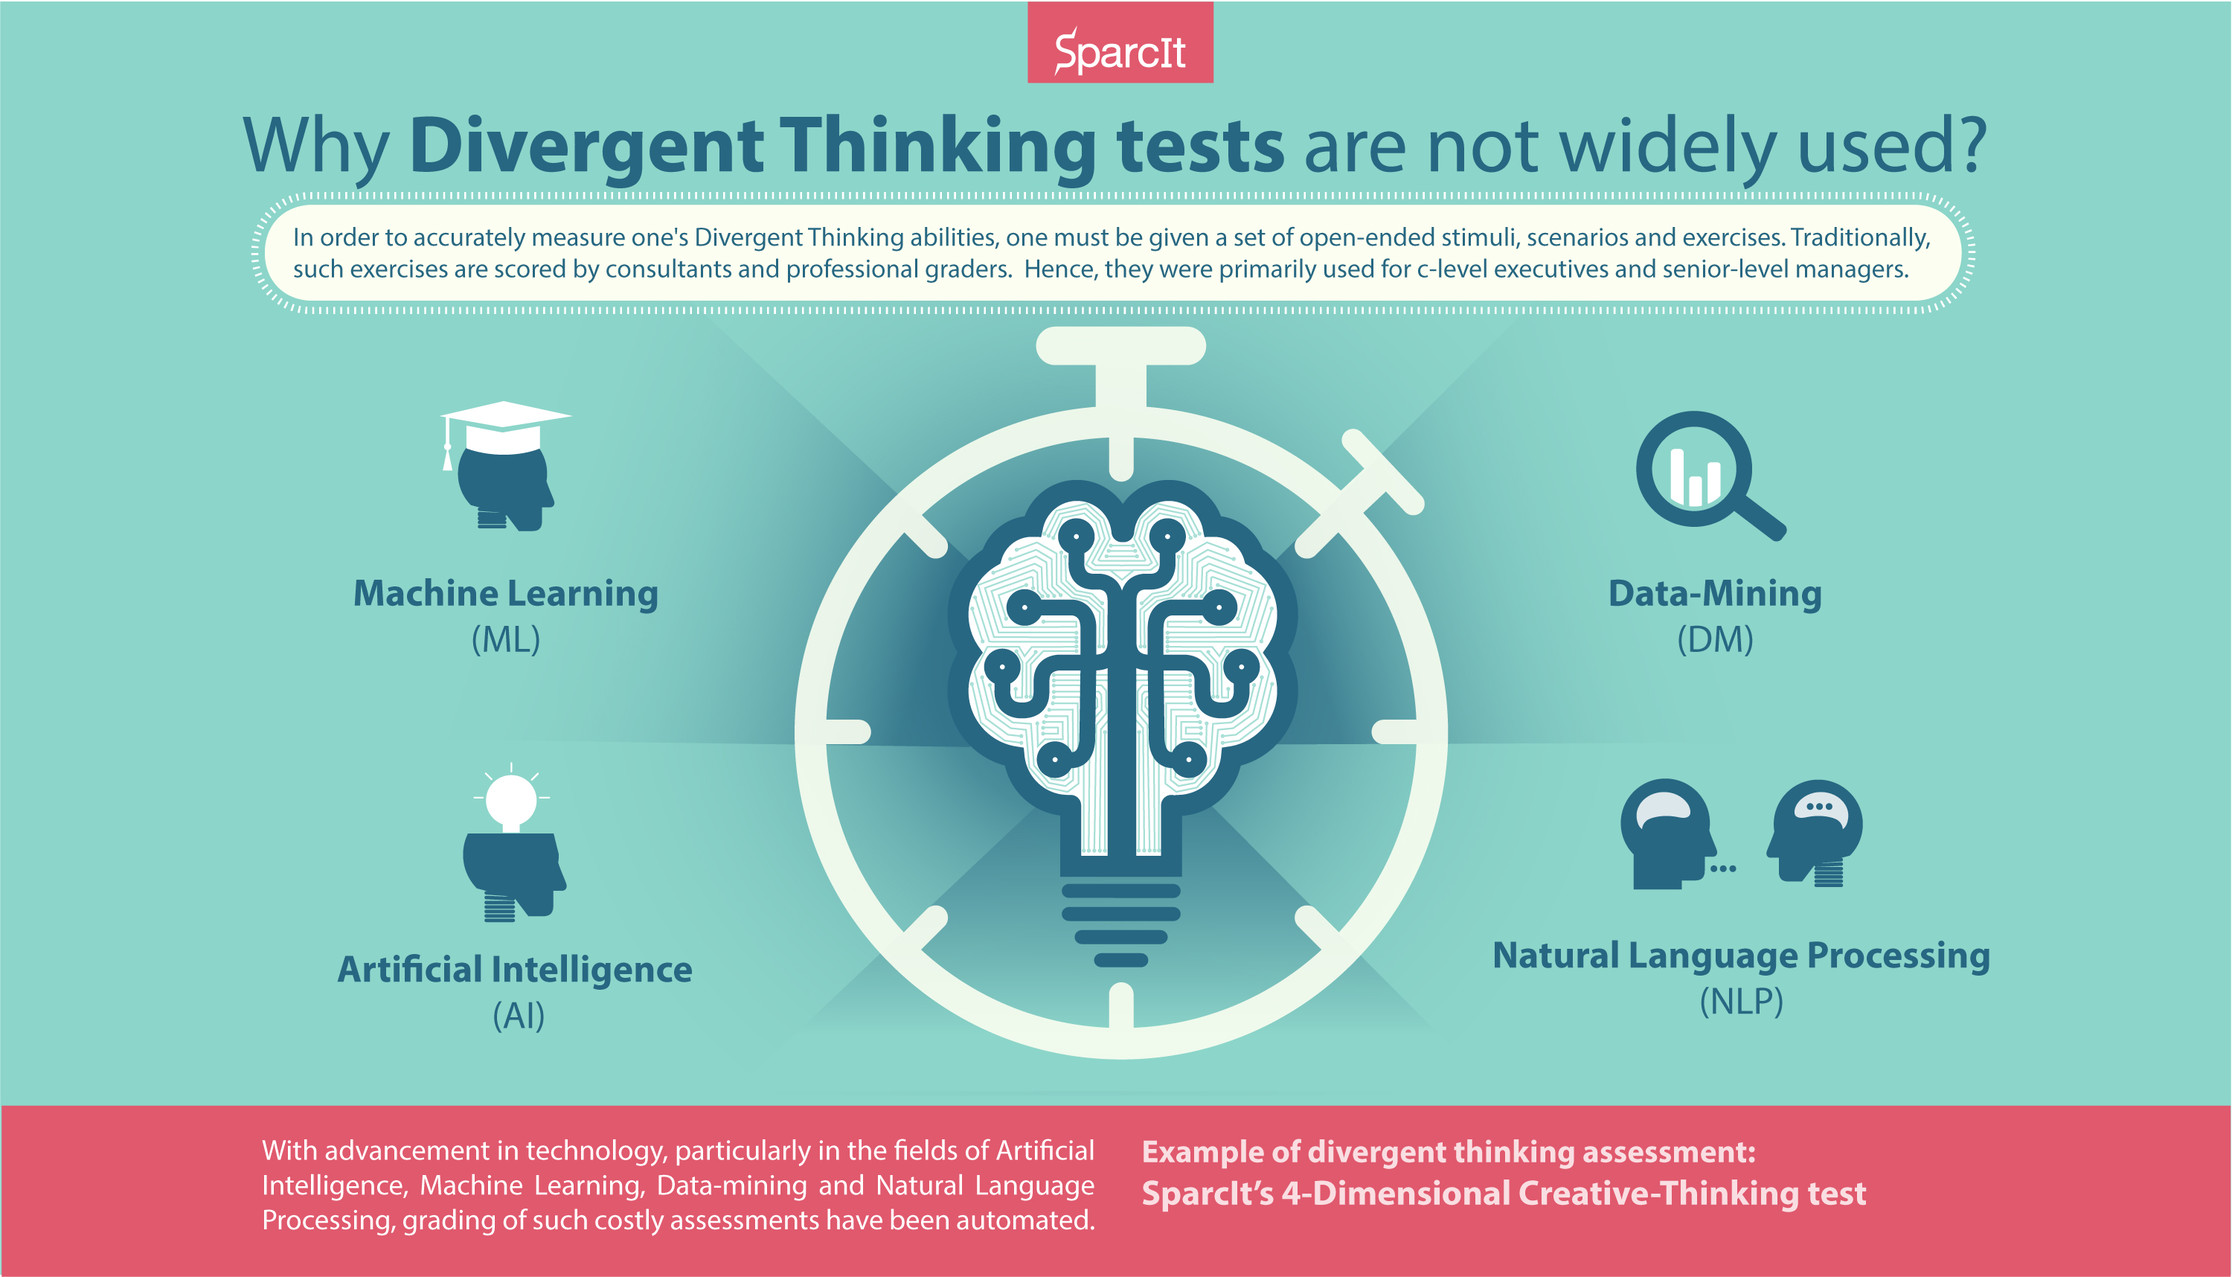 Technology To The Rescue The Rise Of Divergent Thinking Tests